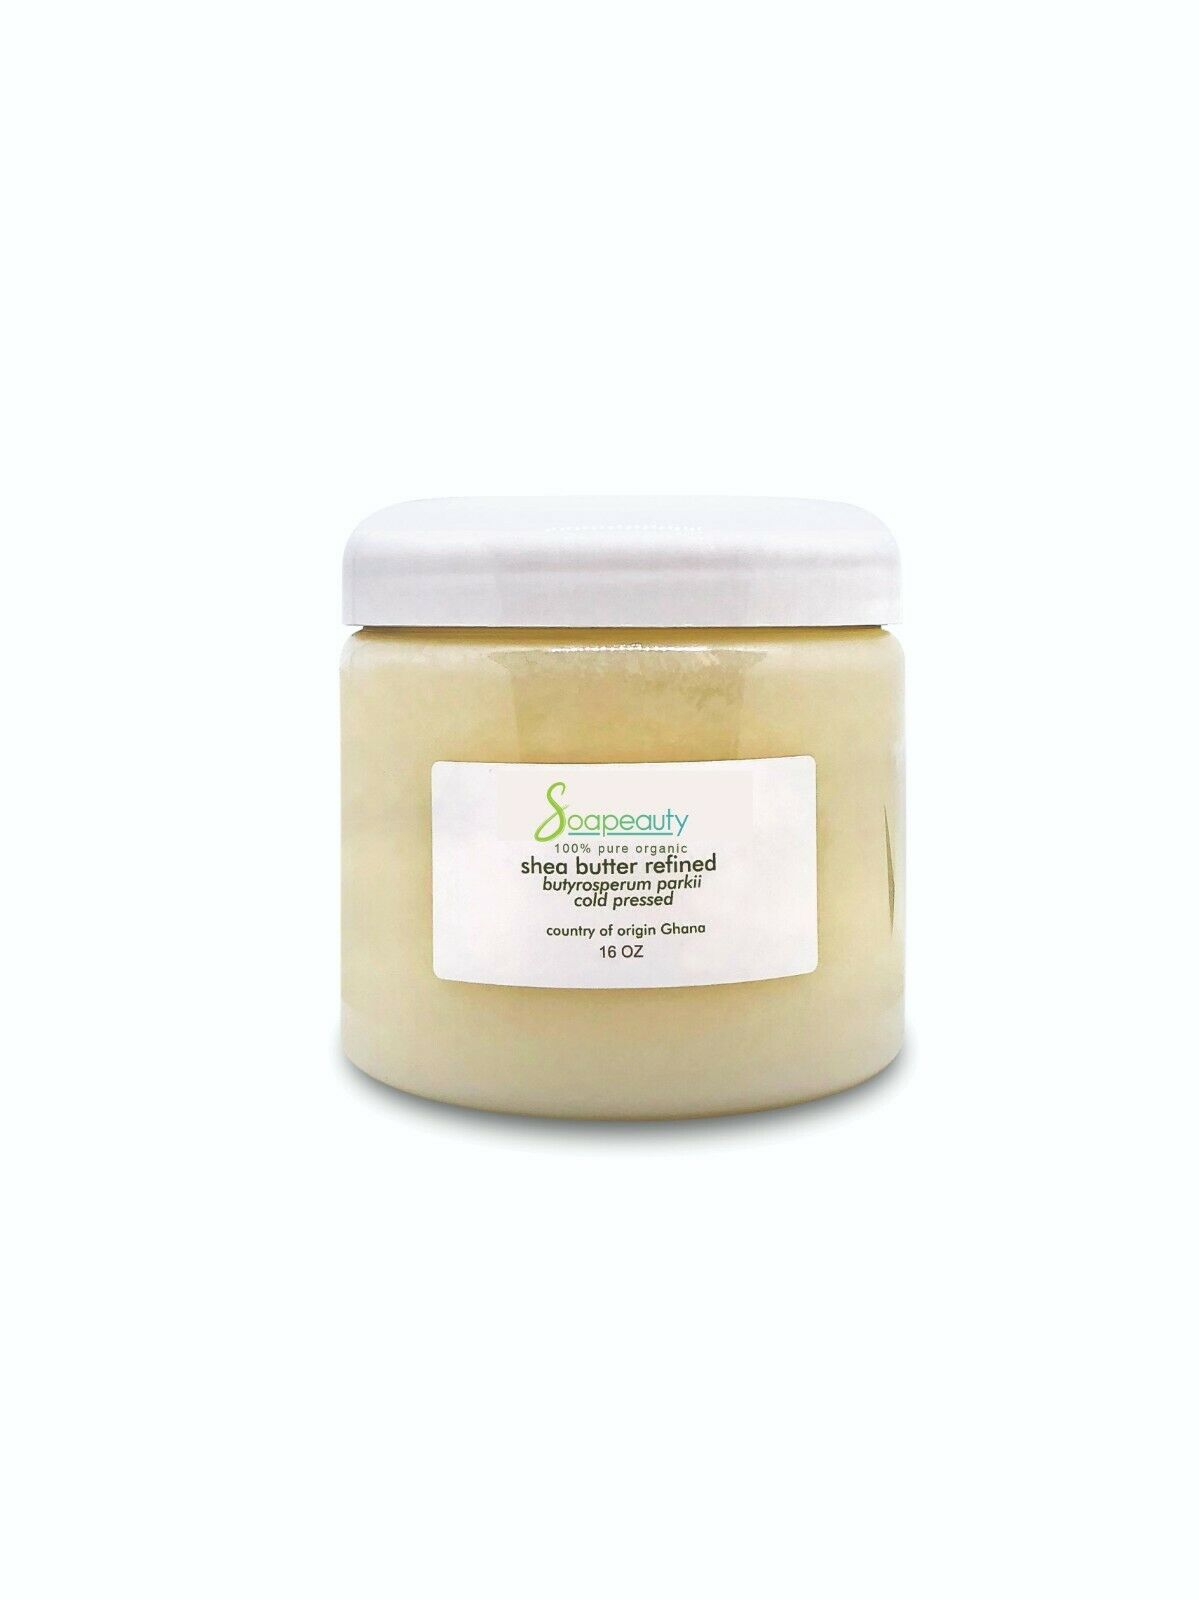 AFRICAN SHEA BUTTER REFINED organic cold pressed from GHANA Soapeauty 4 OZ